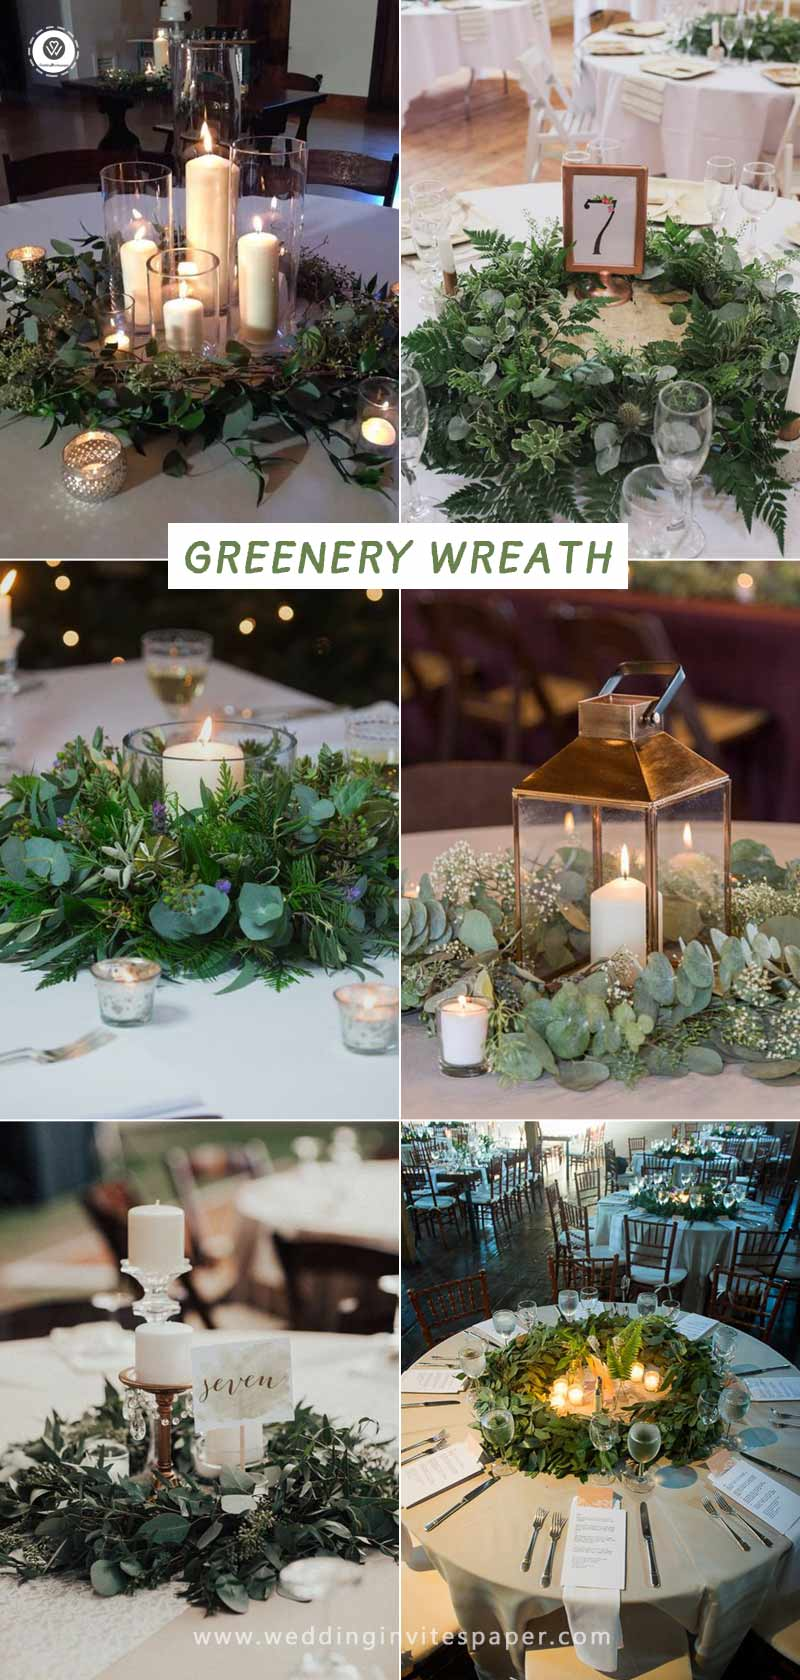 GREENERY-WREATH.jpg